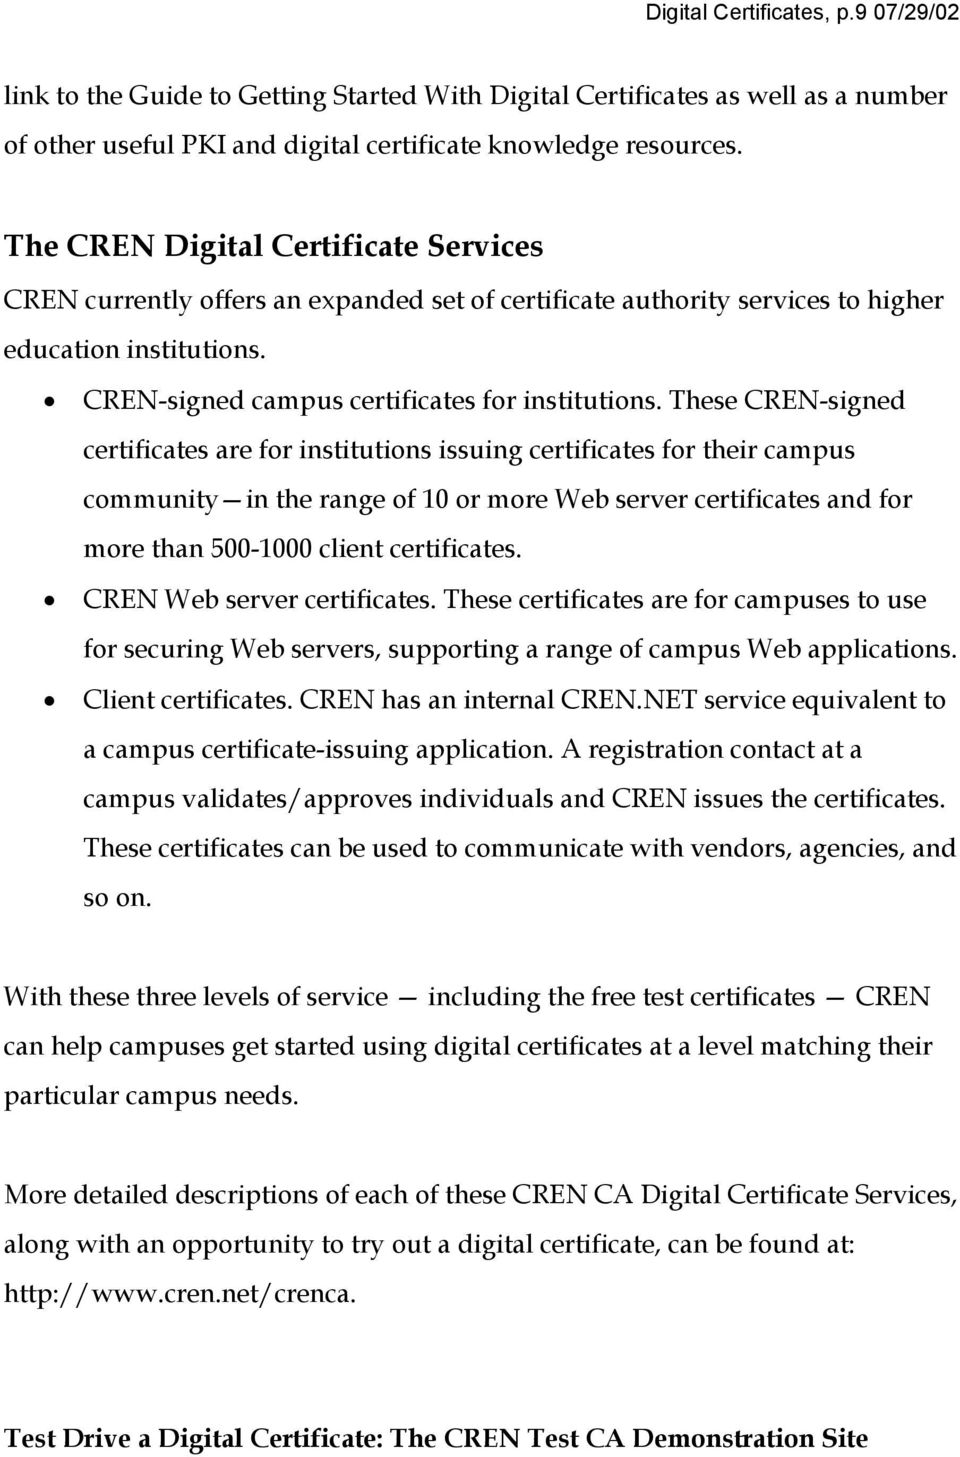 These CREN-signed certificates are for institutions issuing certificates for their campus community in the range of 10 or more Web server certificates and for more than 500-1000 client certificates.